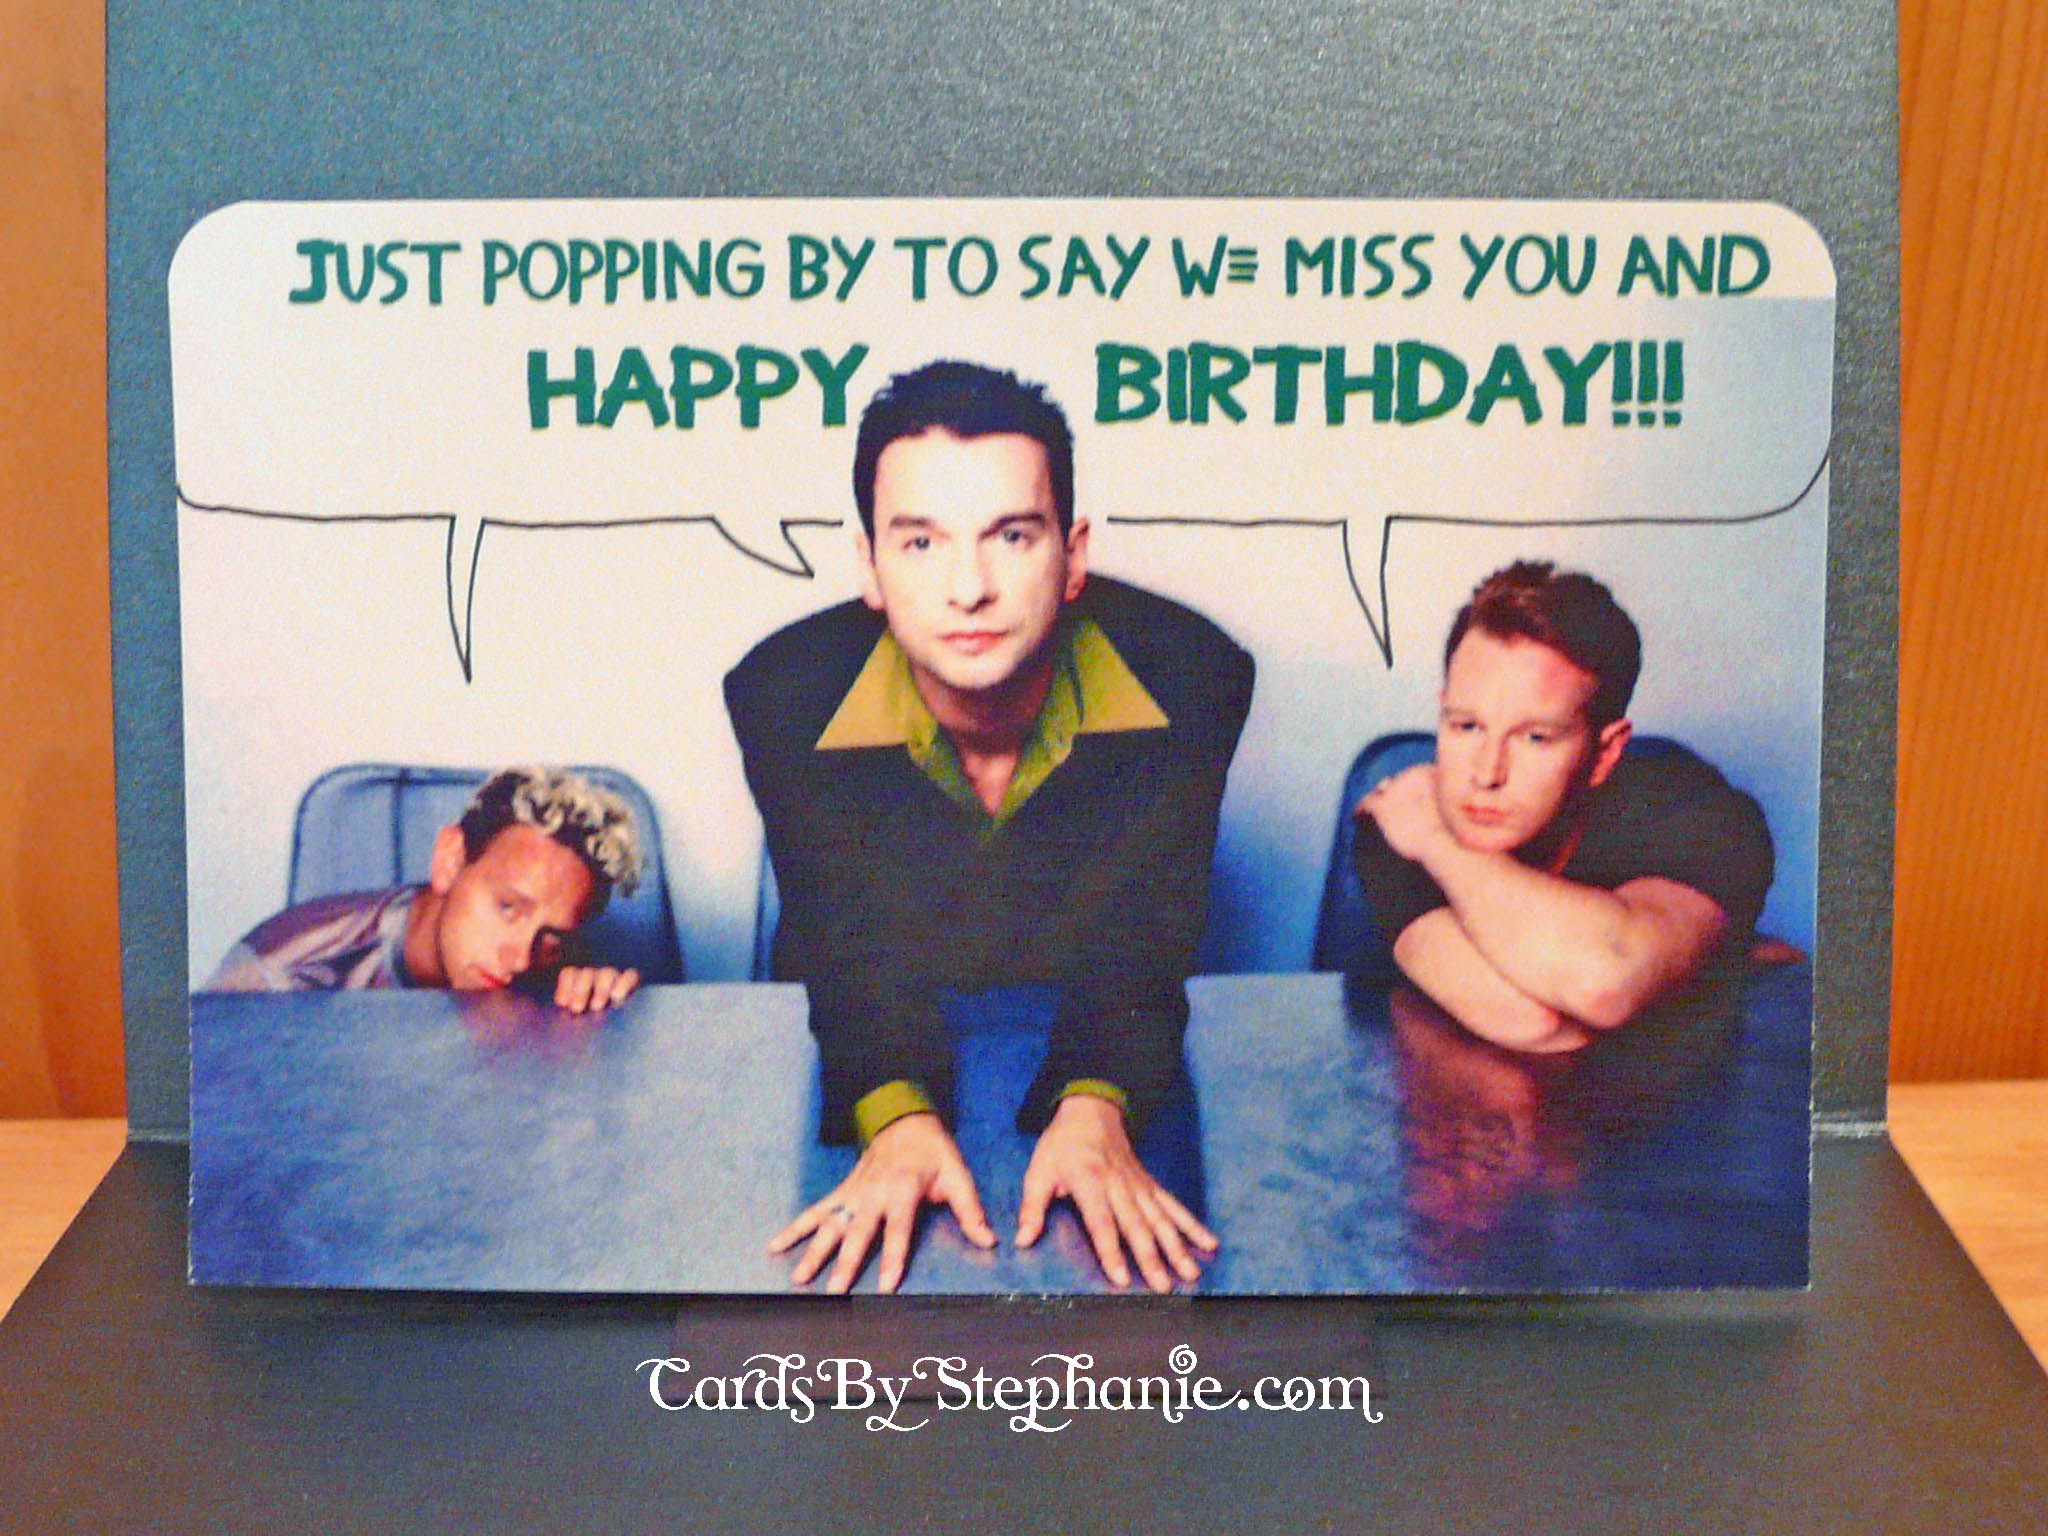 depeche mode happy birthday ; blog-Stacys-2009-Depeche-Mode-birthday-pop-up-card